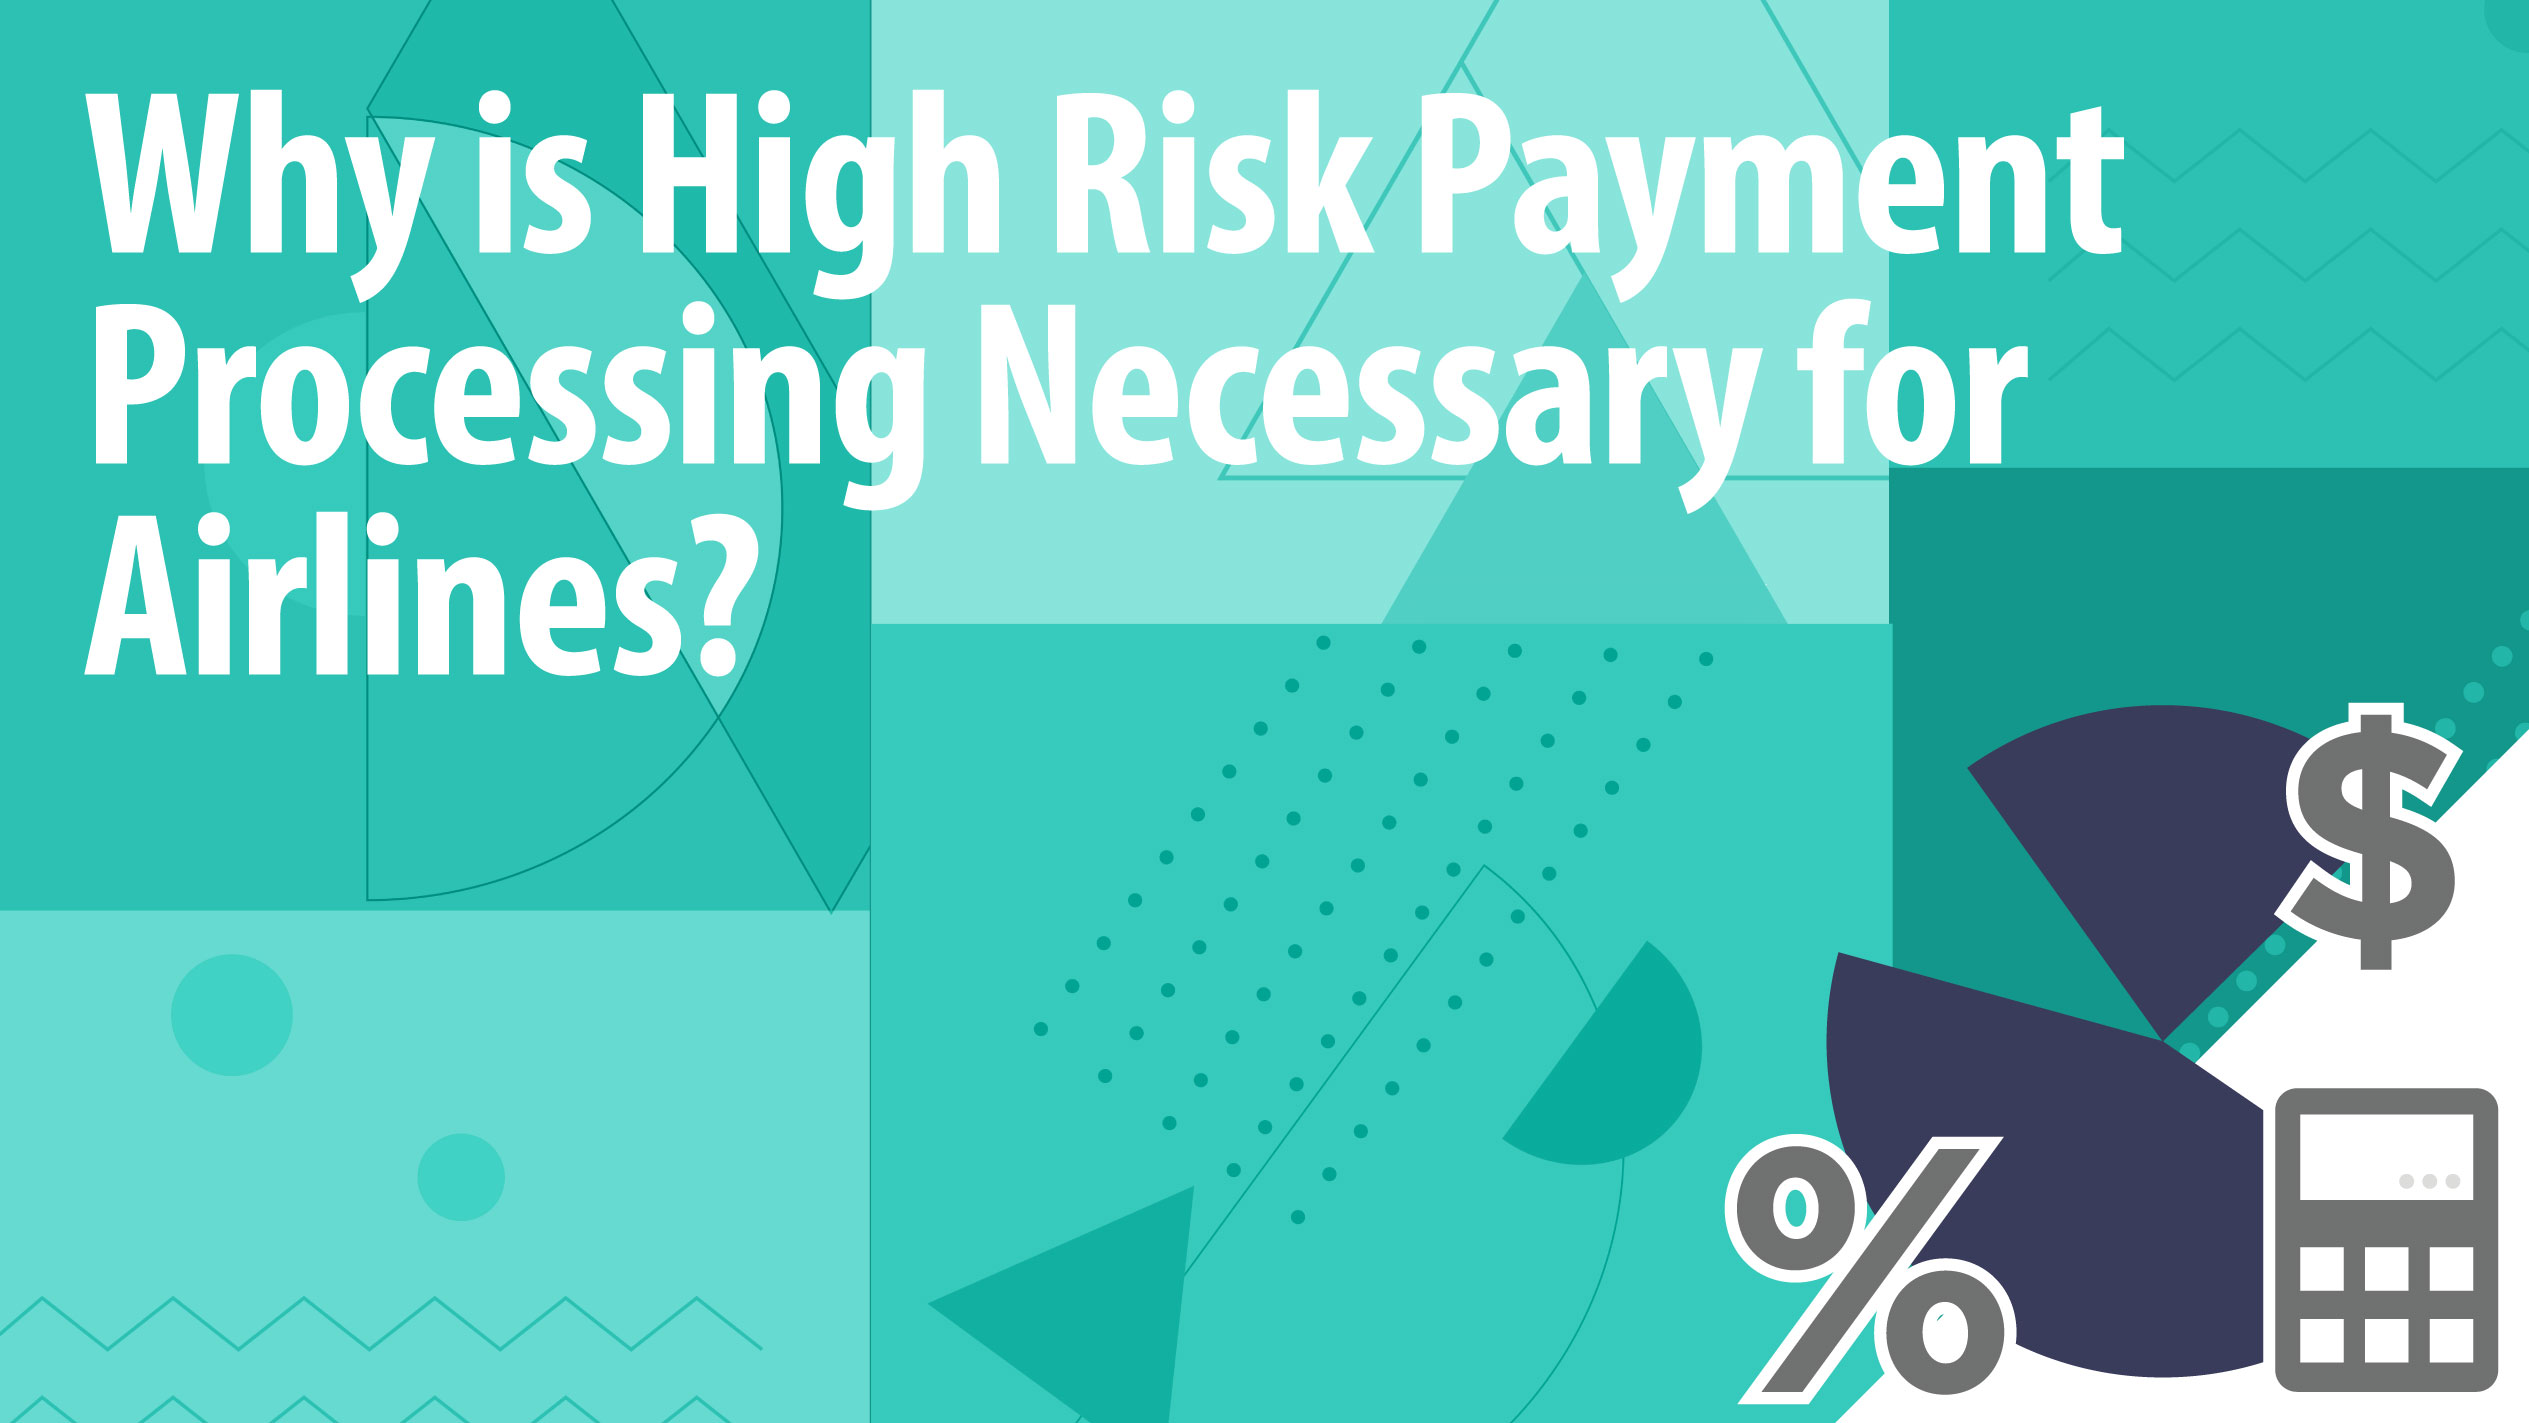 Why is High Risk Payment Processing Necessary for Airlines?